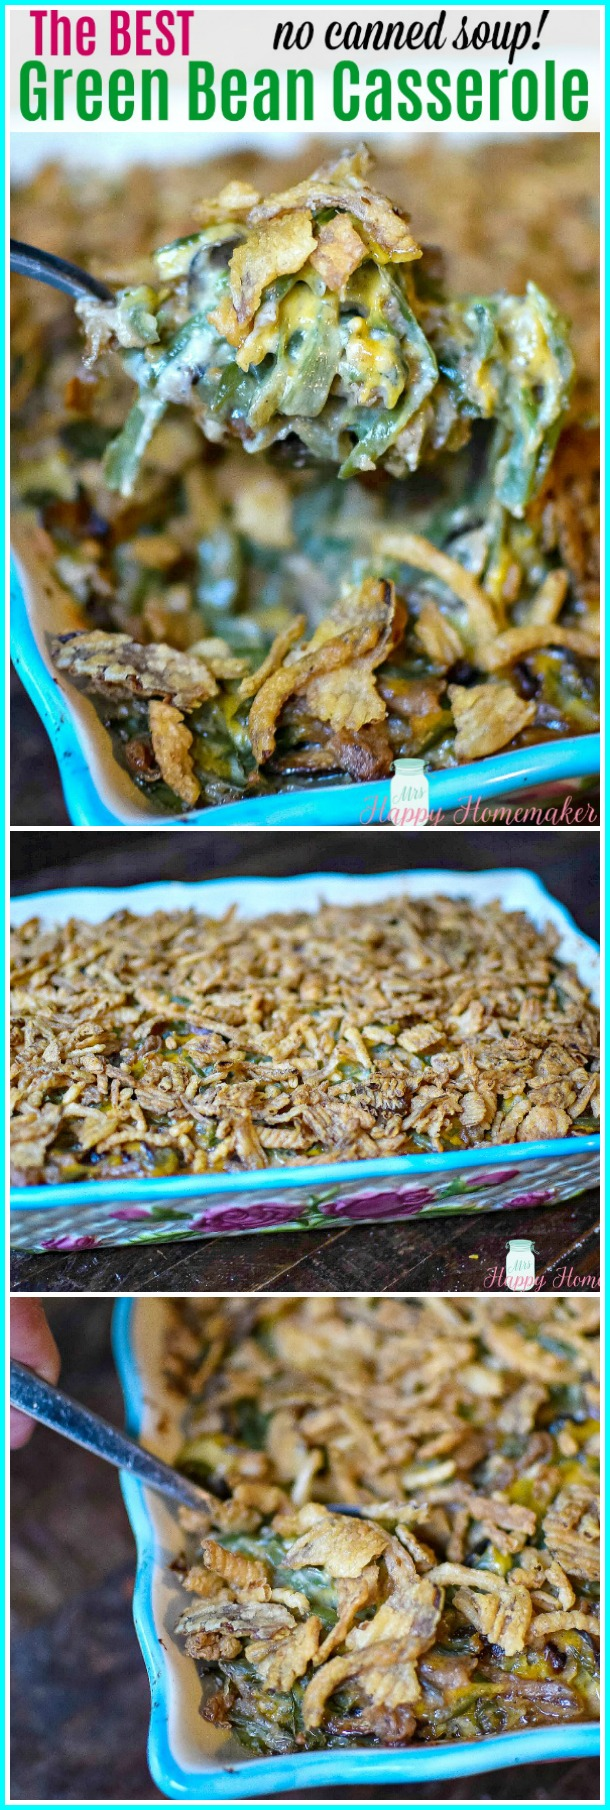 Green Bean Casserole with no canned soup | MrsHappyHomemaker.com